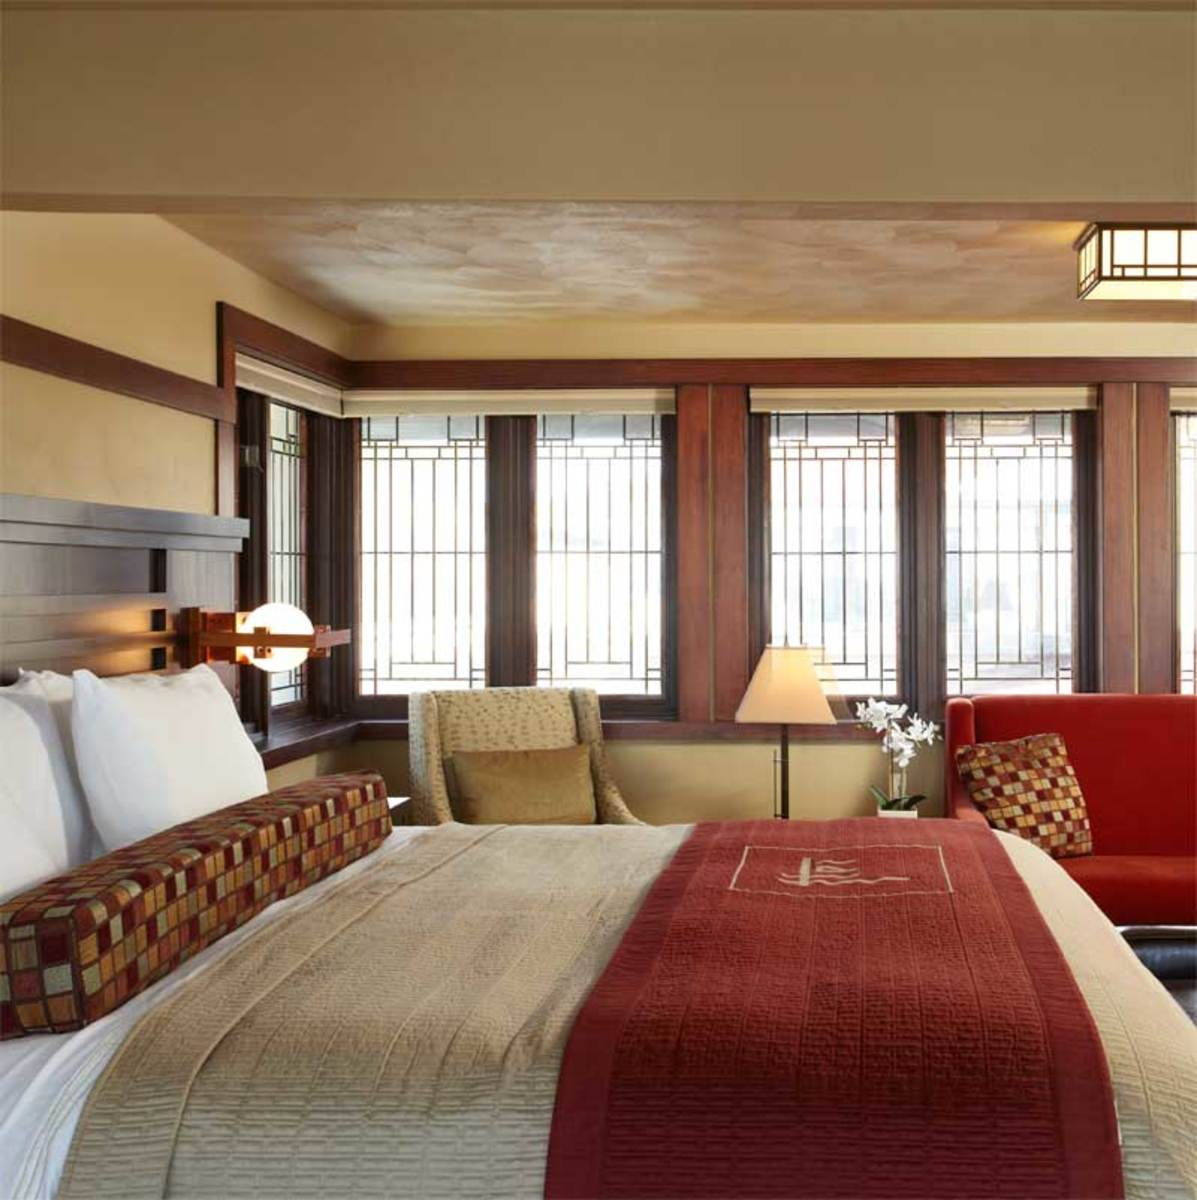 A guest room at the Historic Park Inn hotel.